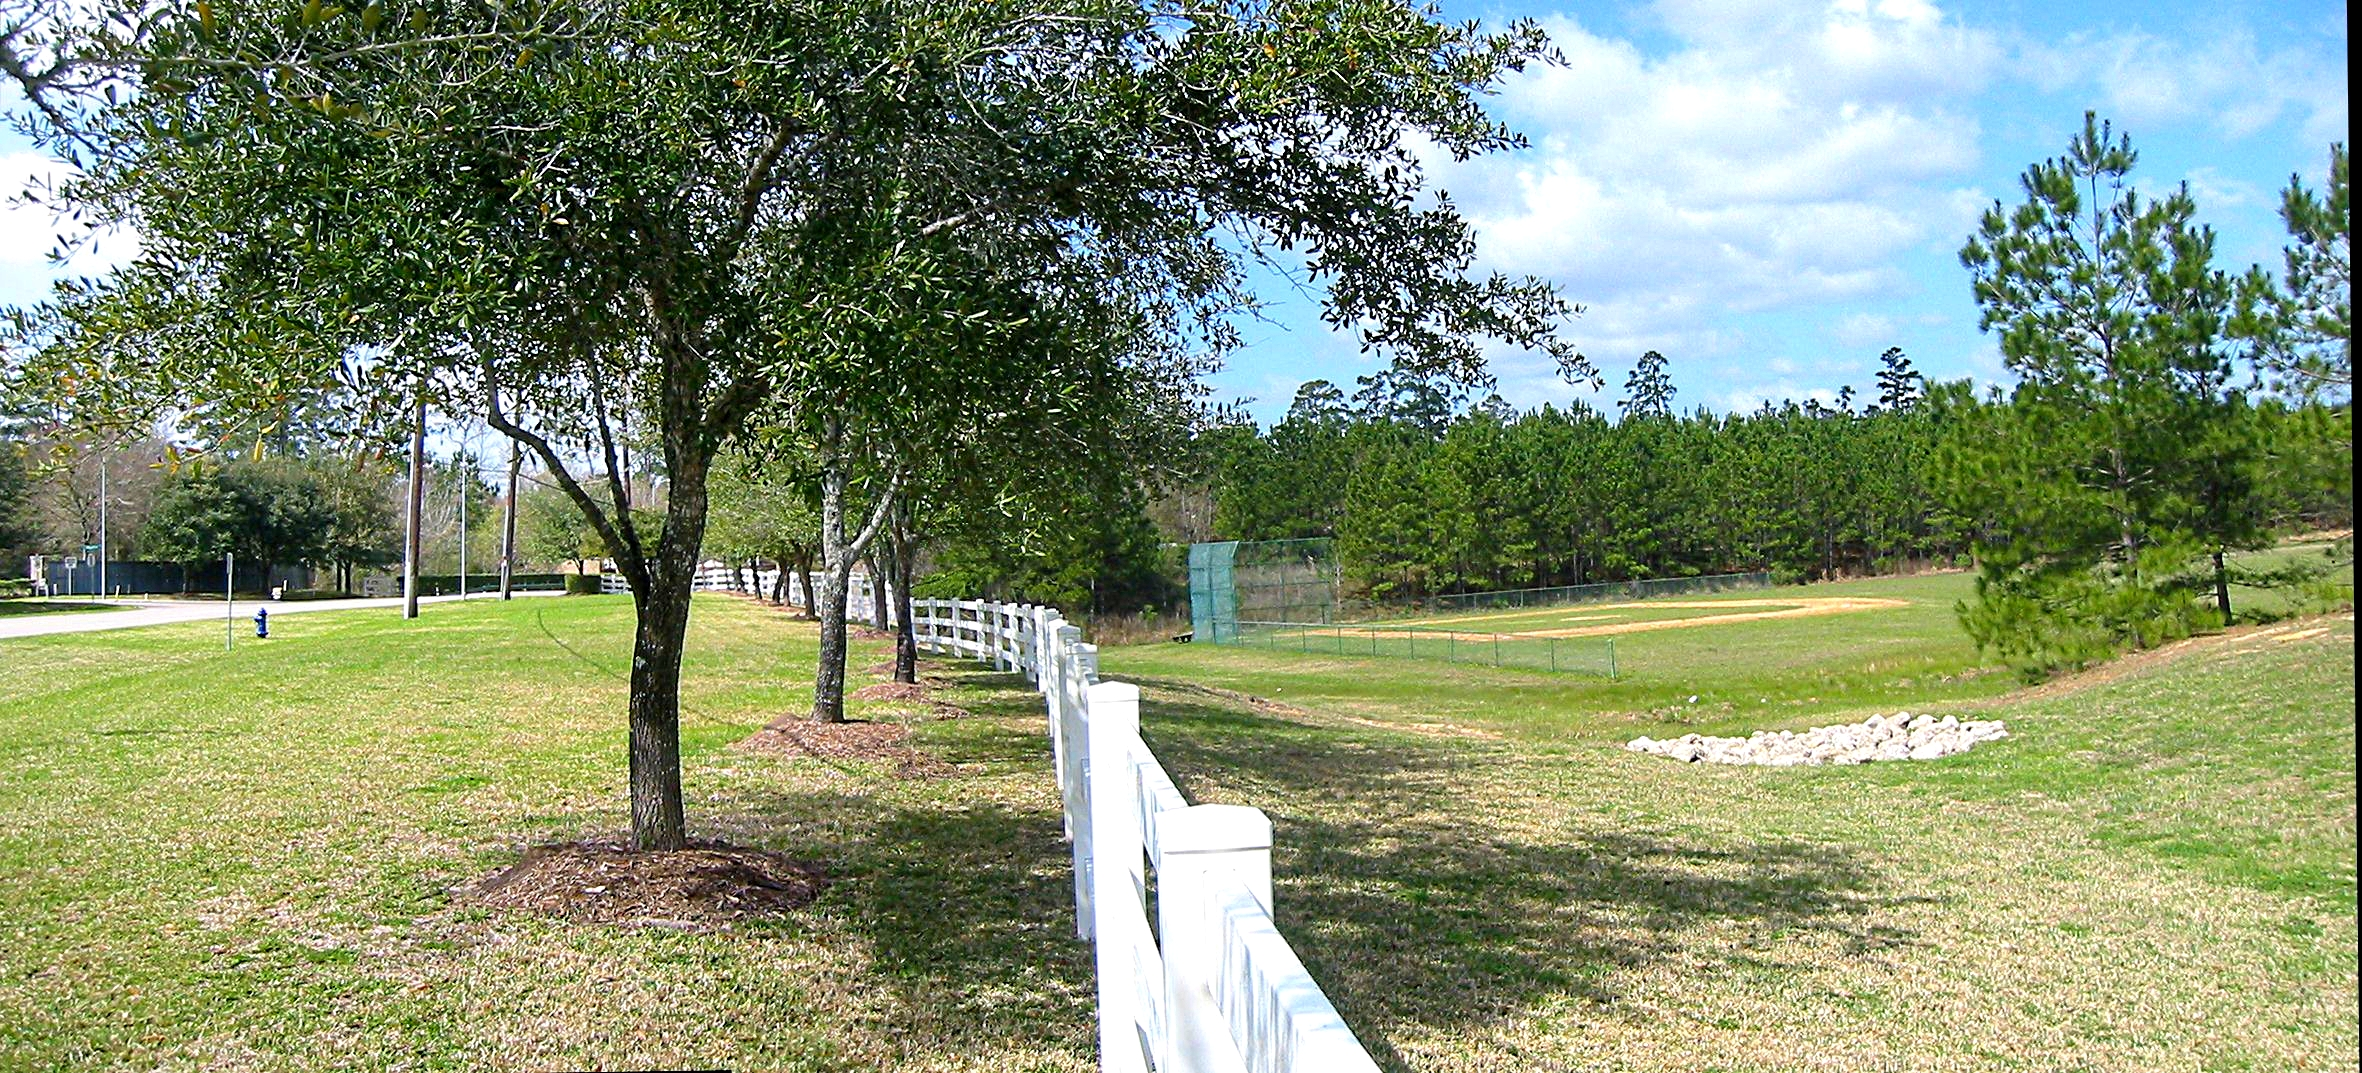 2 Baseball Diamonds Surrounded by a White Wooden Fence - Gus Kilthau